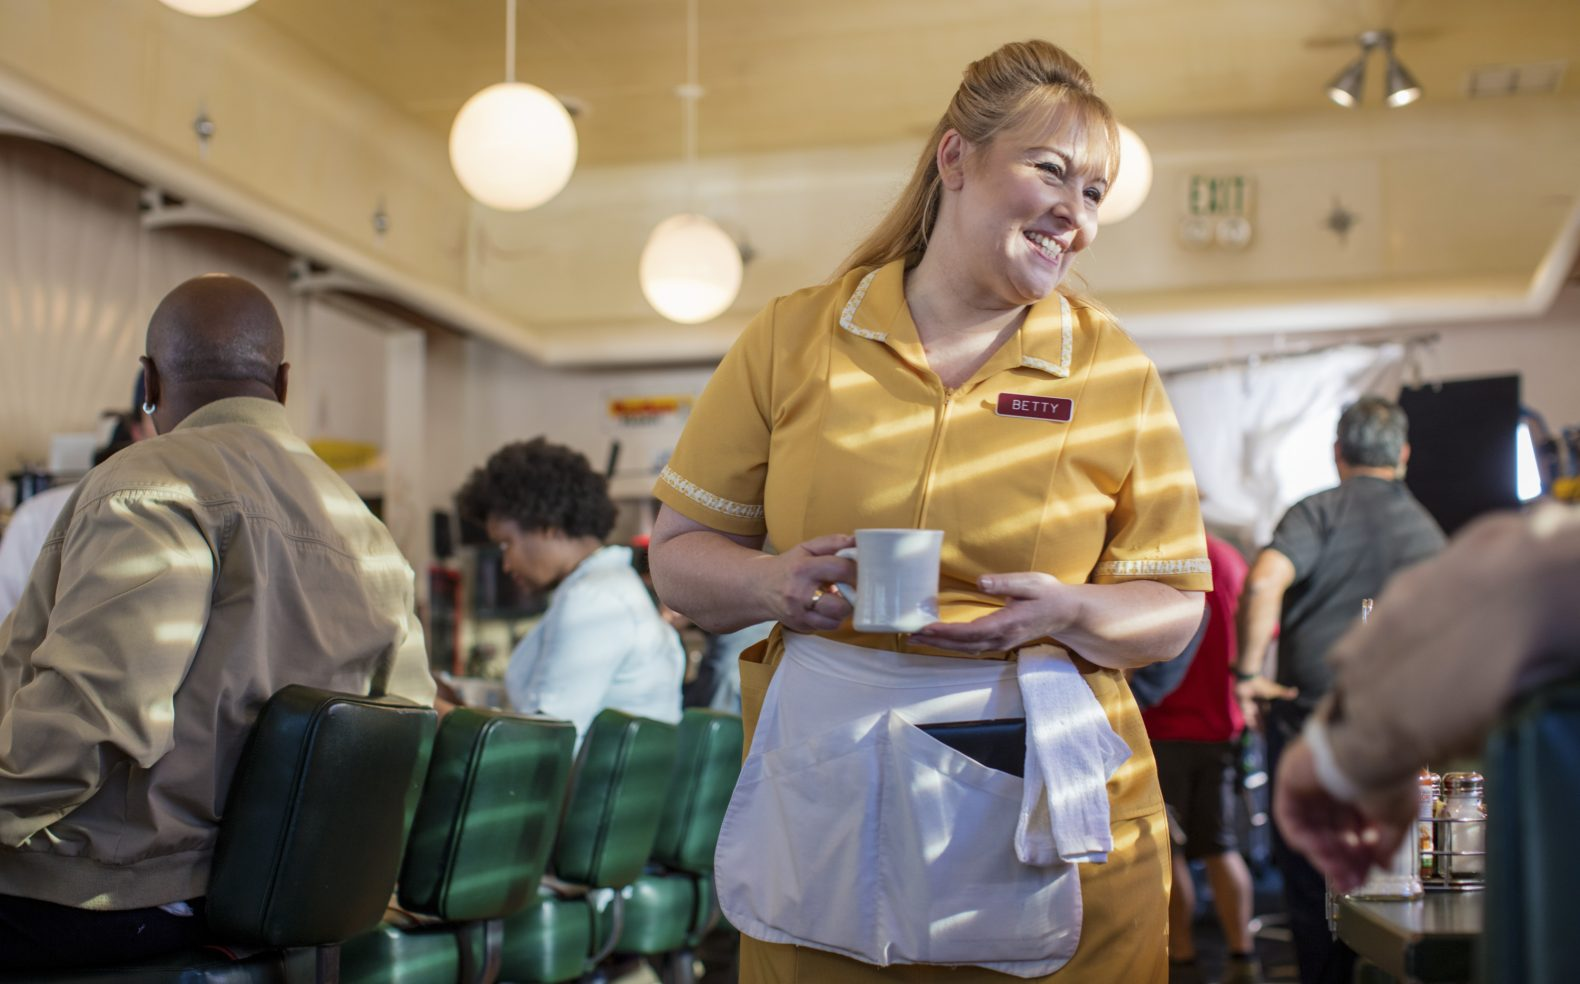 A waitress in a yellow diner uniform walking through the diner holding a cup of coffee and smiling at a customer.